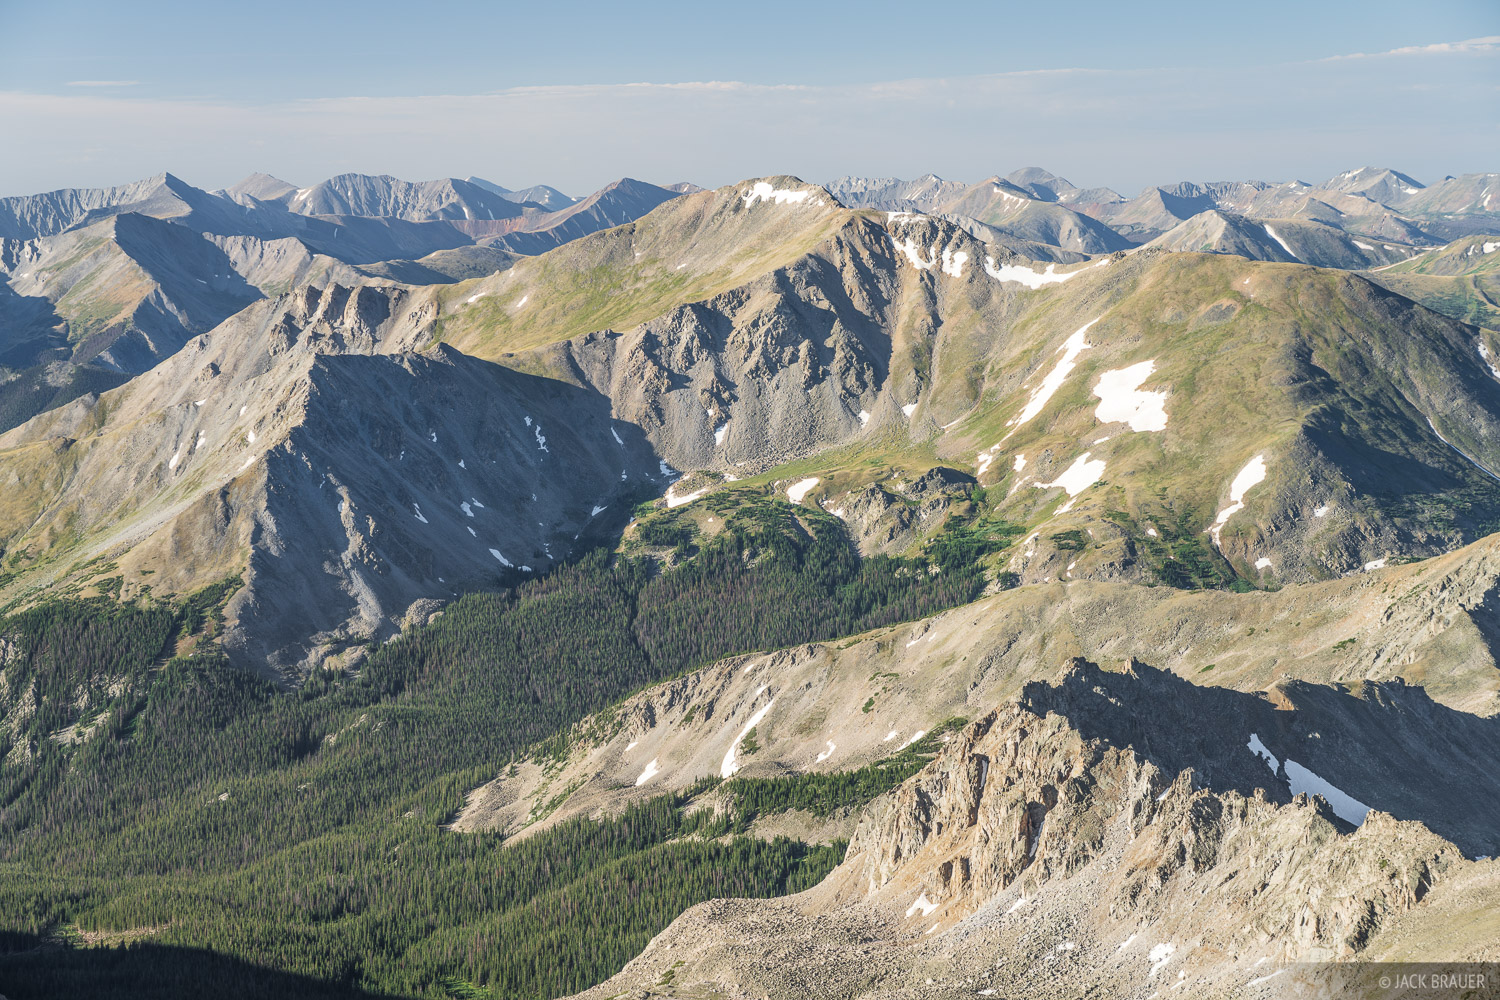 Collegiate Peaks Wilderness, Colorado, Mount Harvard, Mount Yale, Sawatch Range, 14er, photo